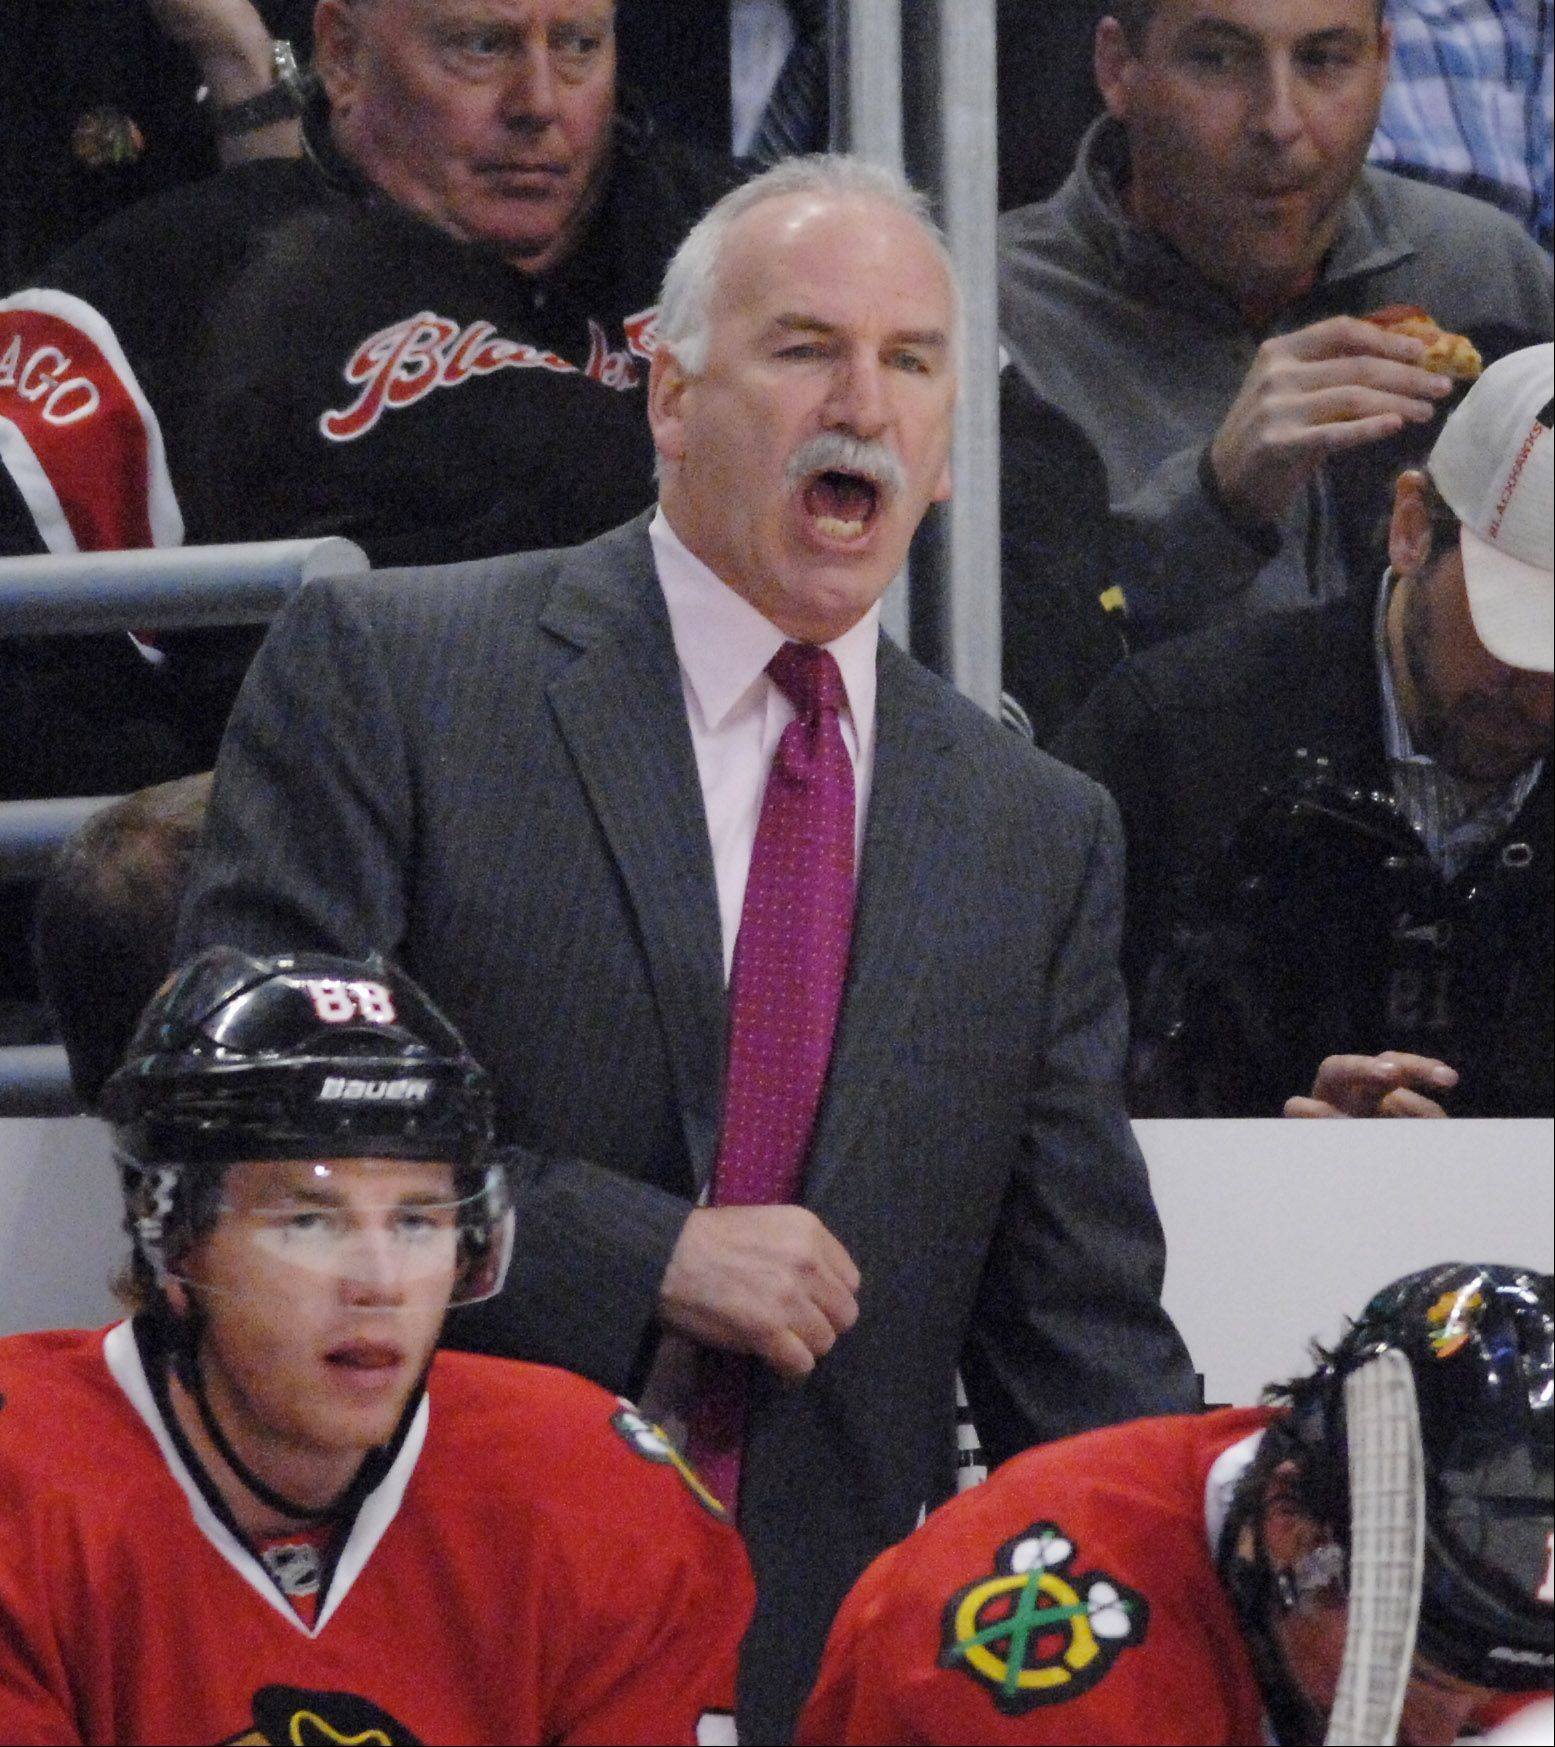 Chicago Blackhawks Coach Joel Quenneville yells instructions.